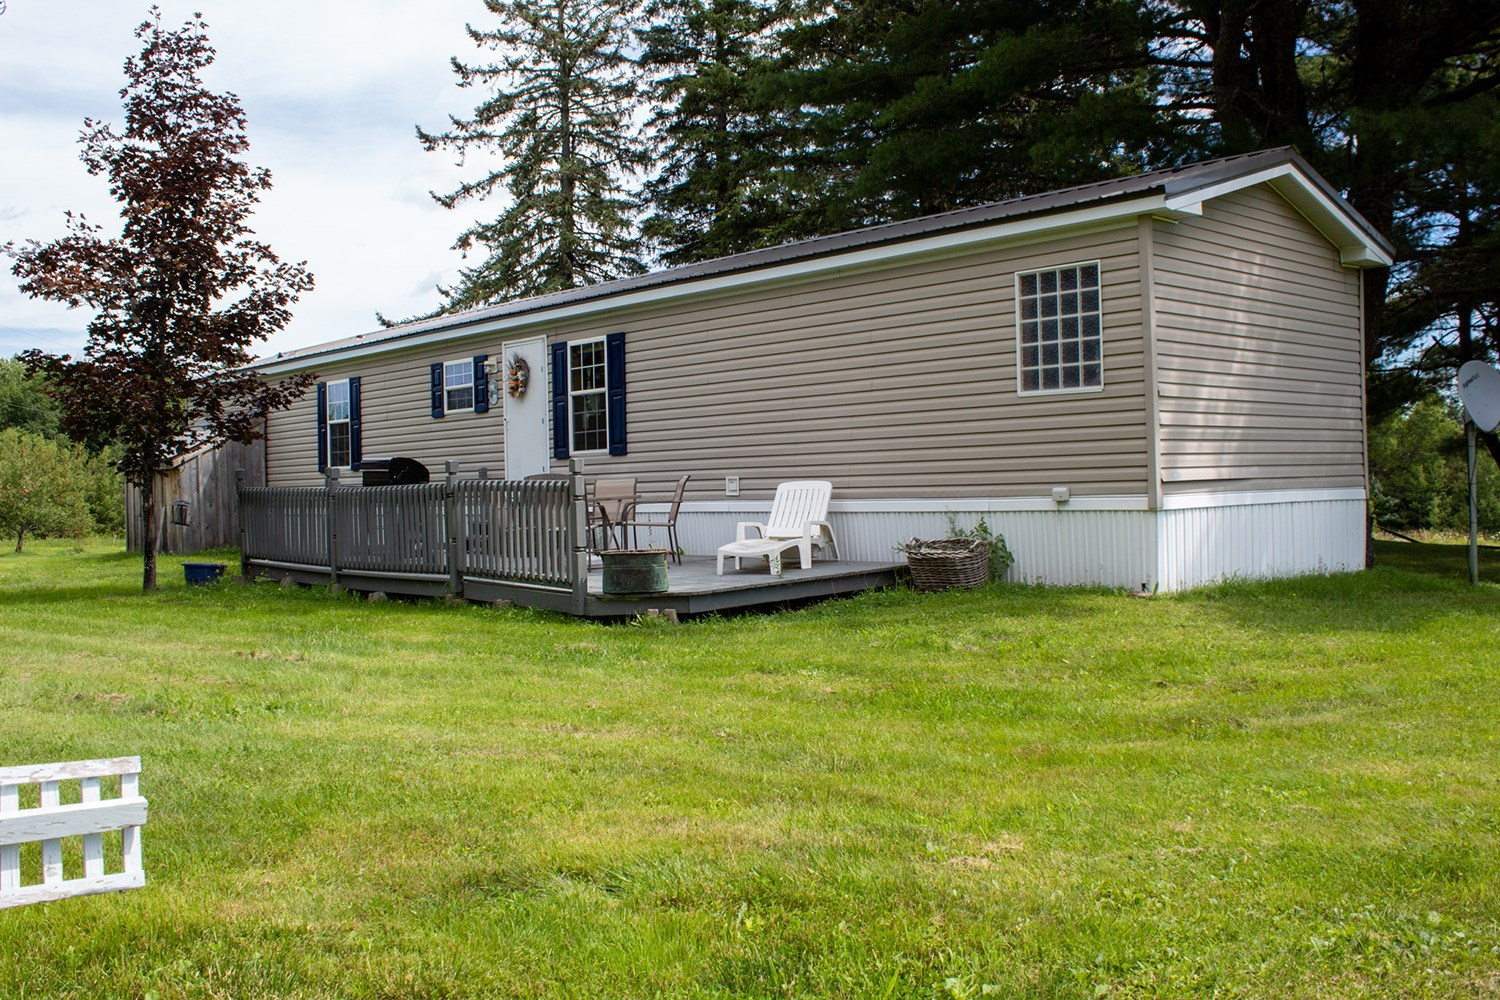 Country Home for Sale in Penobscot County Maine